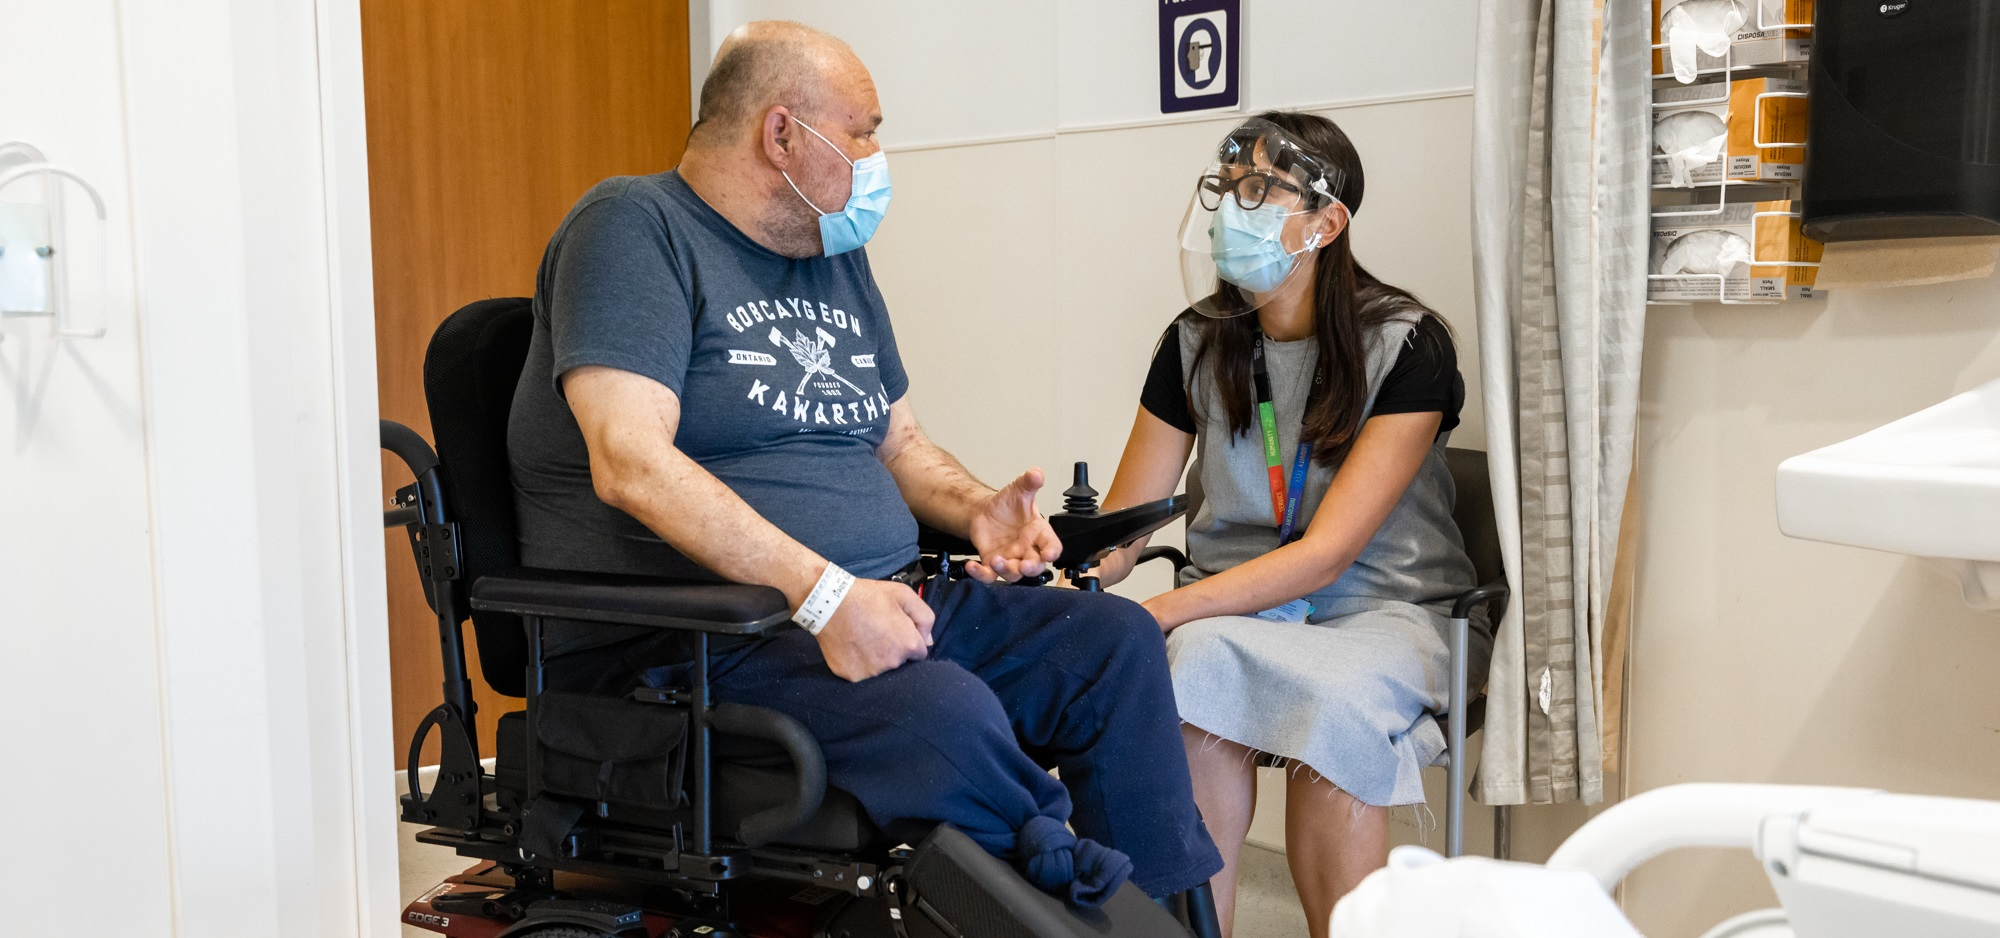 A patient who is in a wheelchair is sitting in a hospital room and talking with a health care worker. The patient is wearing a procedure mask and the health care worker is wearing a procedure mask and face shield.